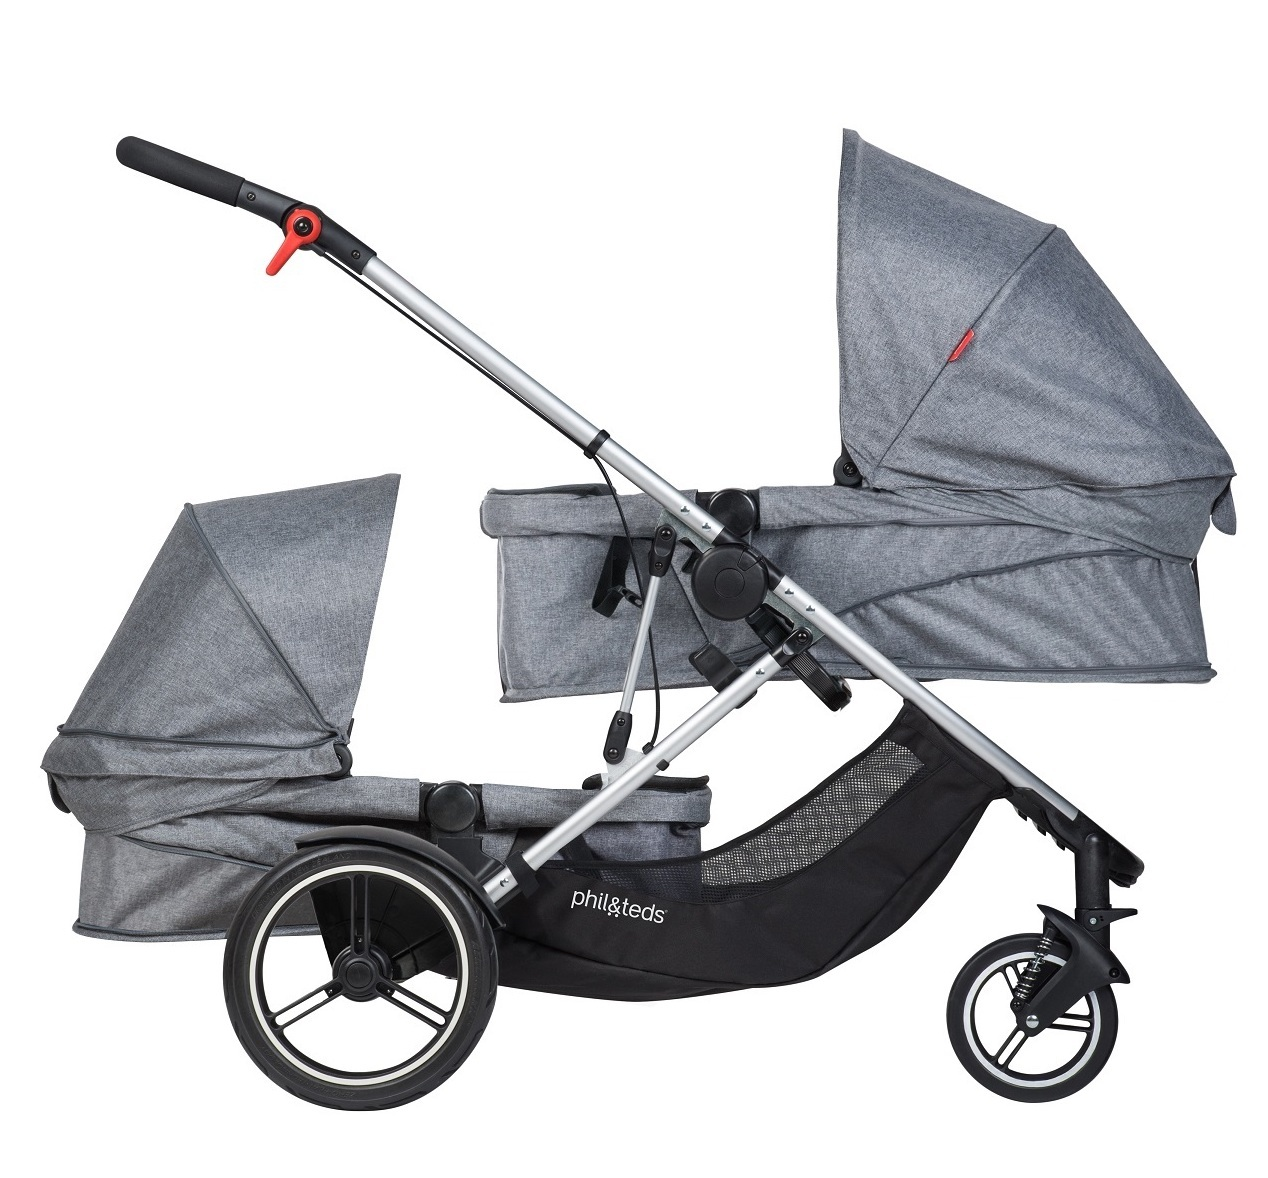 【40%OFF実施中】phil&teds voyager buggy Grey Marl フィルアンドテッズ ボイジャー